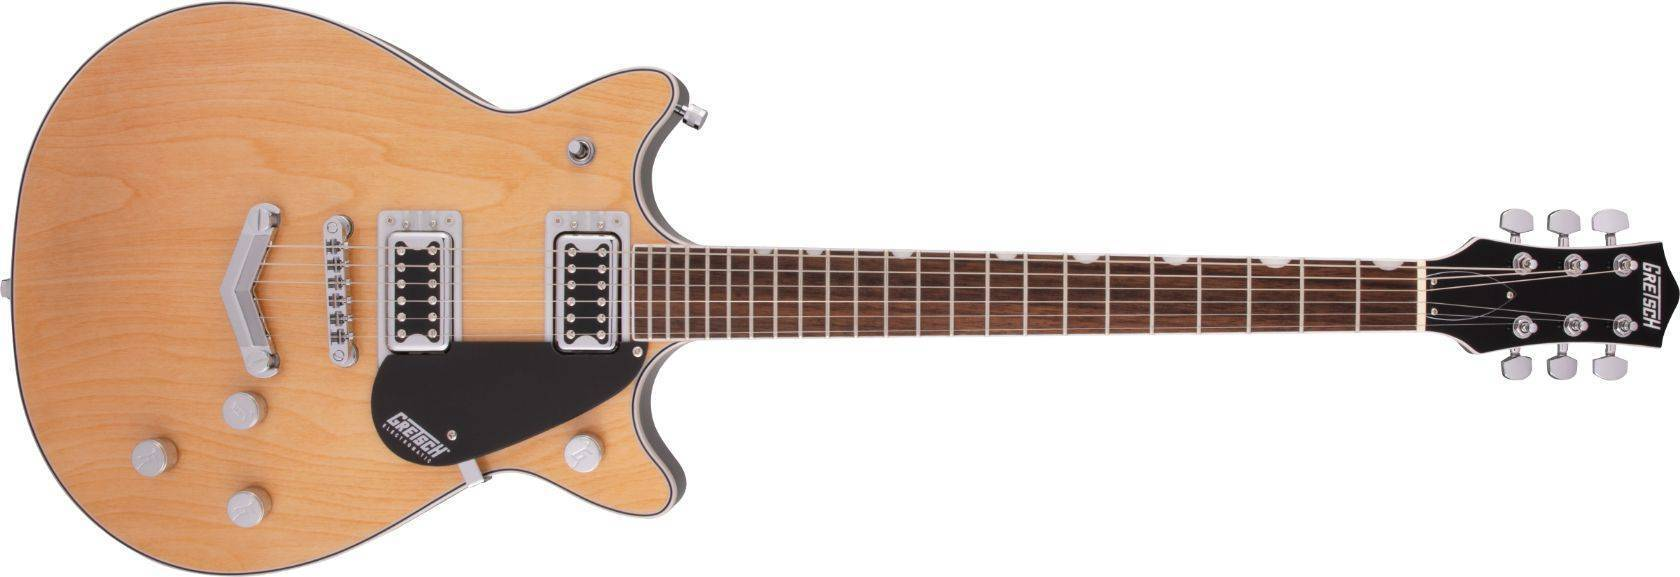 Guitarra Gretsch G5222 ELECTROMATIC DOUBLE JET BT WITH V-STOPTAIL